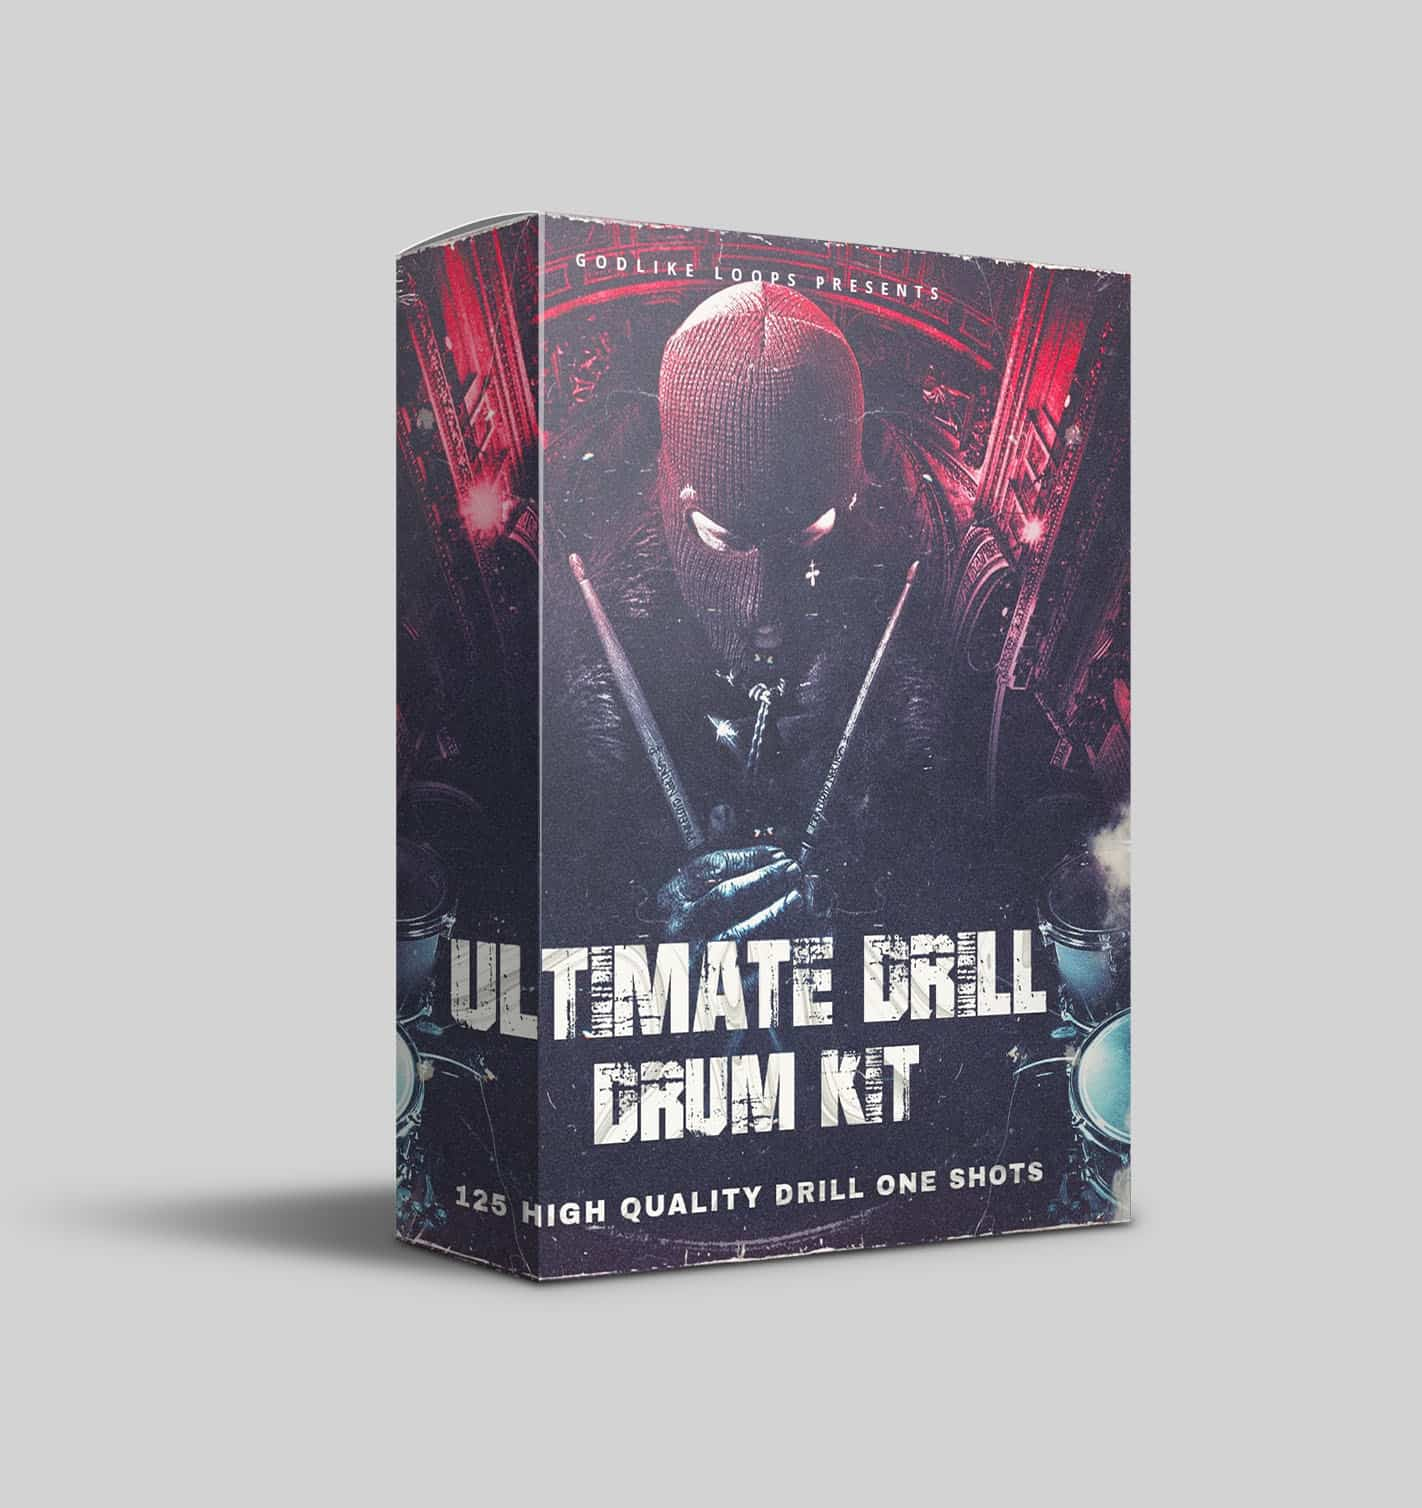 Ultimate Drill Drum Kit by Godlike Loops